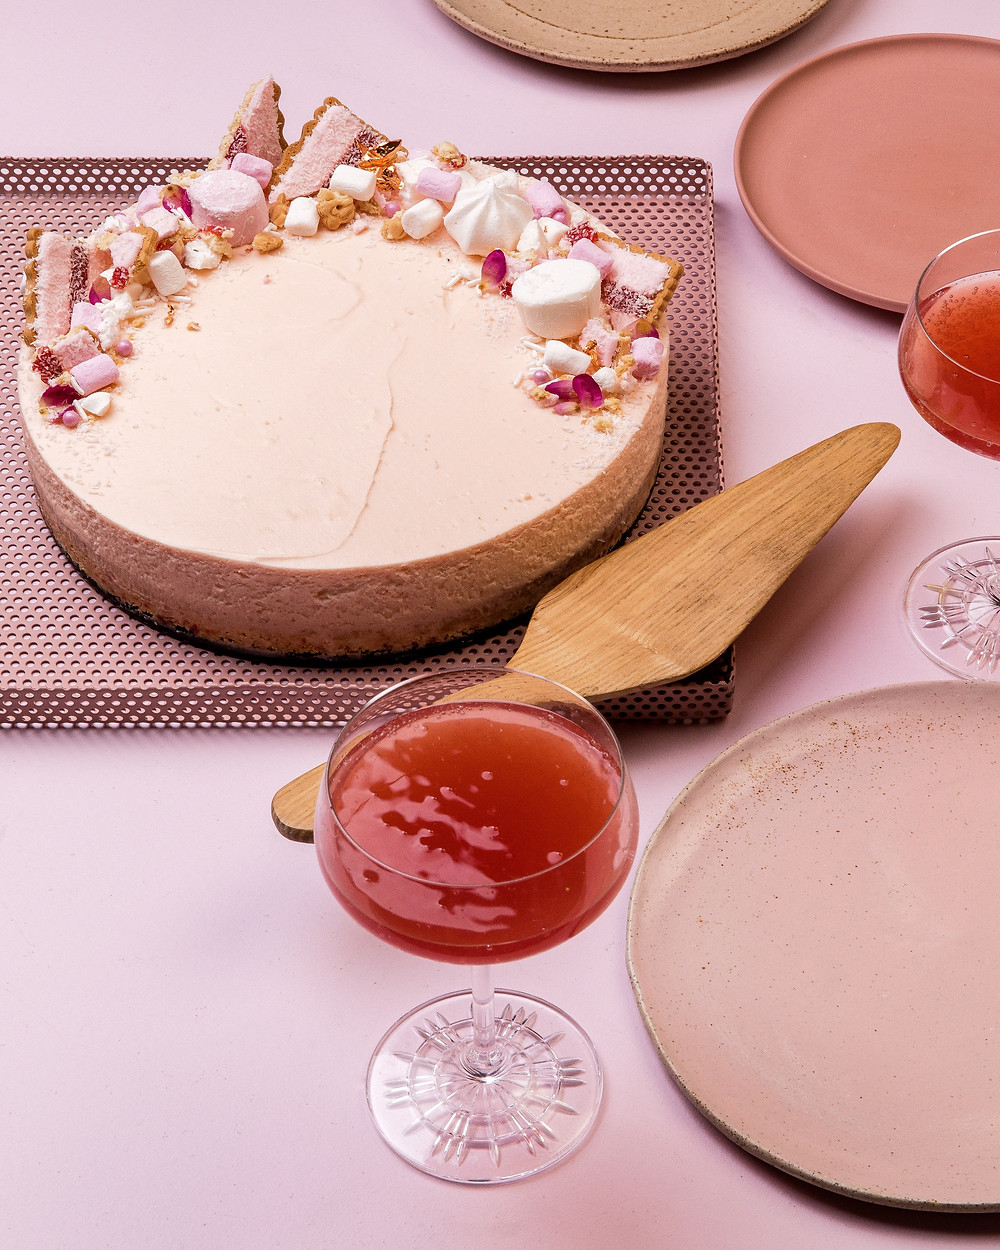 Iced VoVo Cheesecake